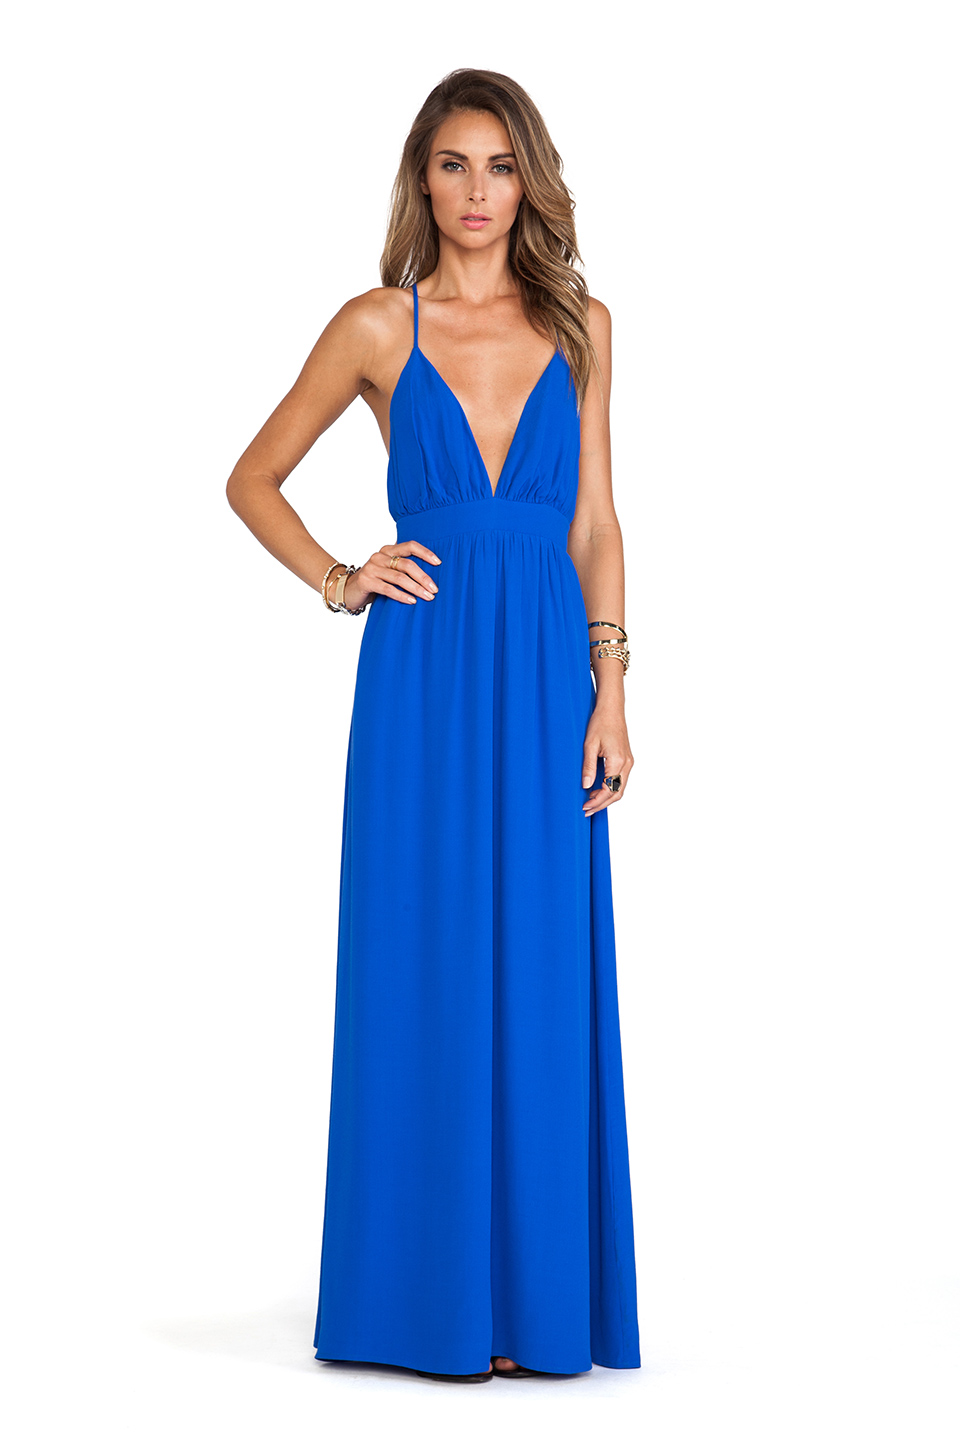 Wanna the newest Maxi Dresses, long dresses For Women at cheap prices? Come and buy our daily updated new arrival White Maxi Dress and Long Sleeve Maxi Dress on sale at rabbetedh.ga